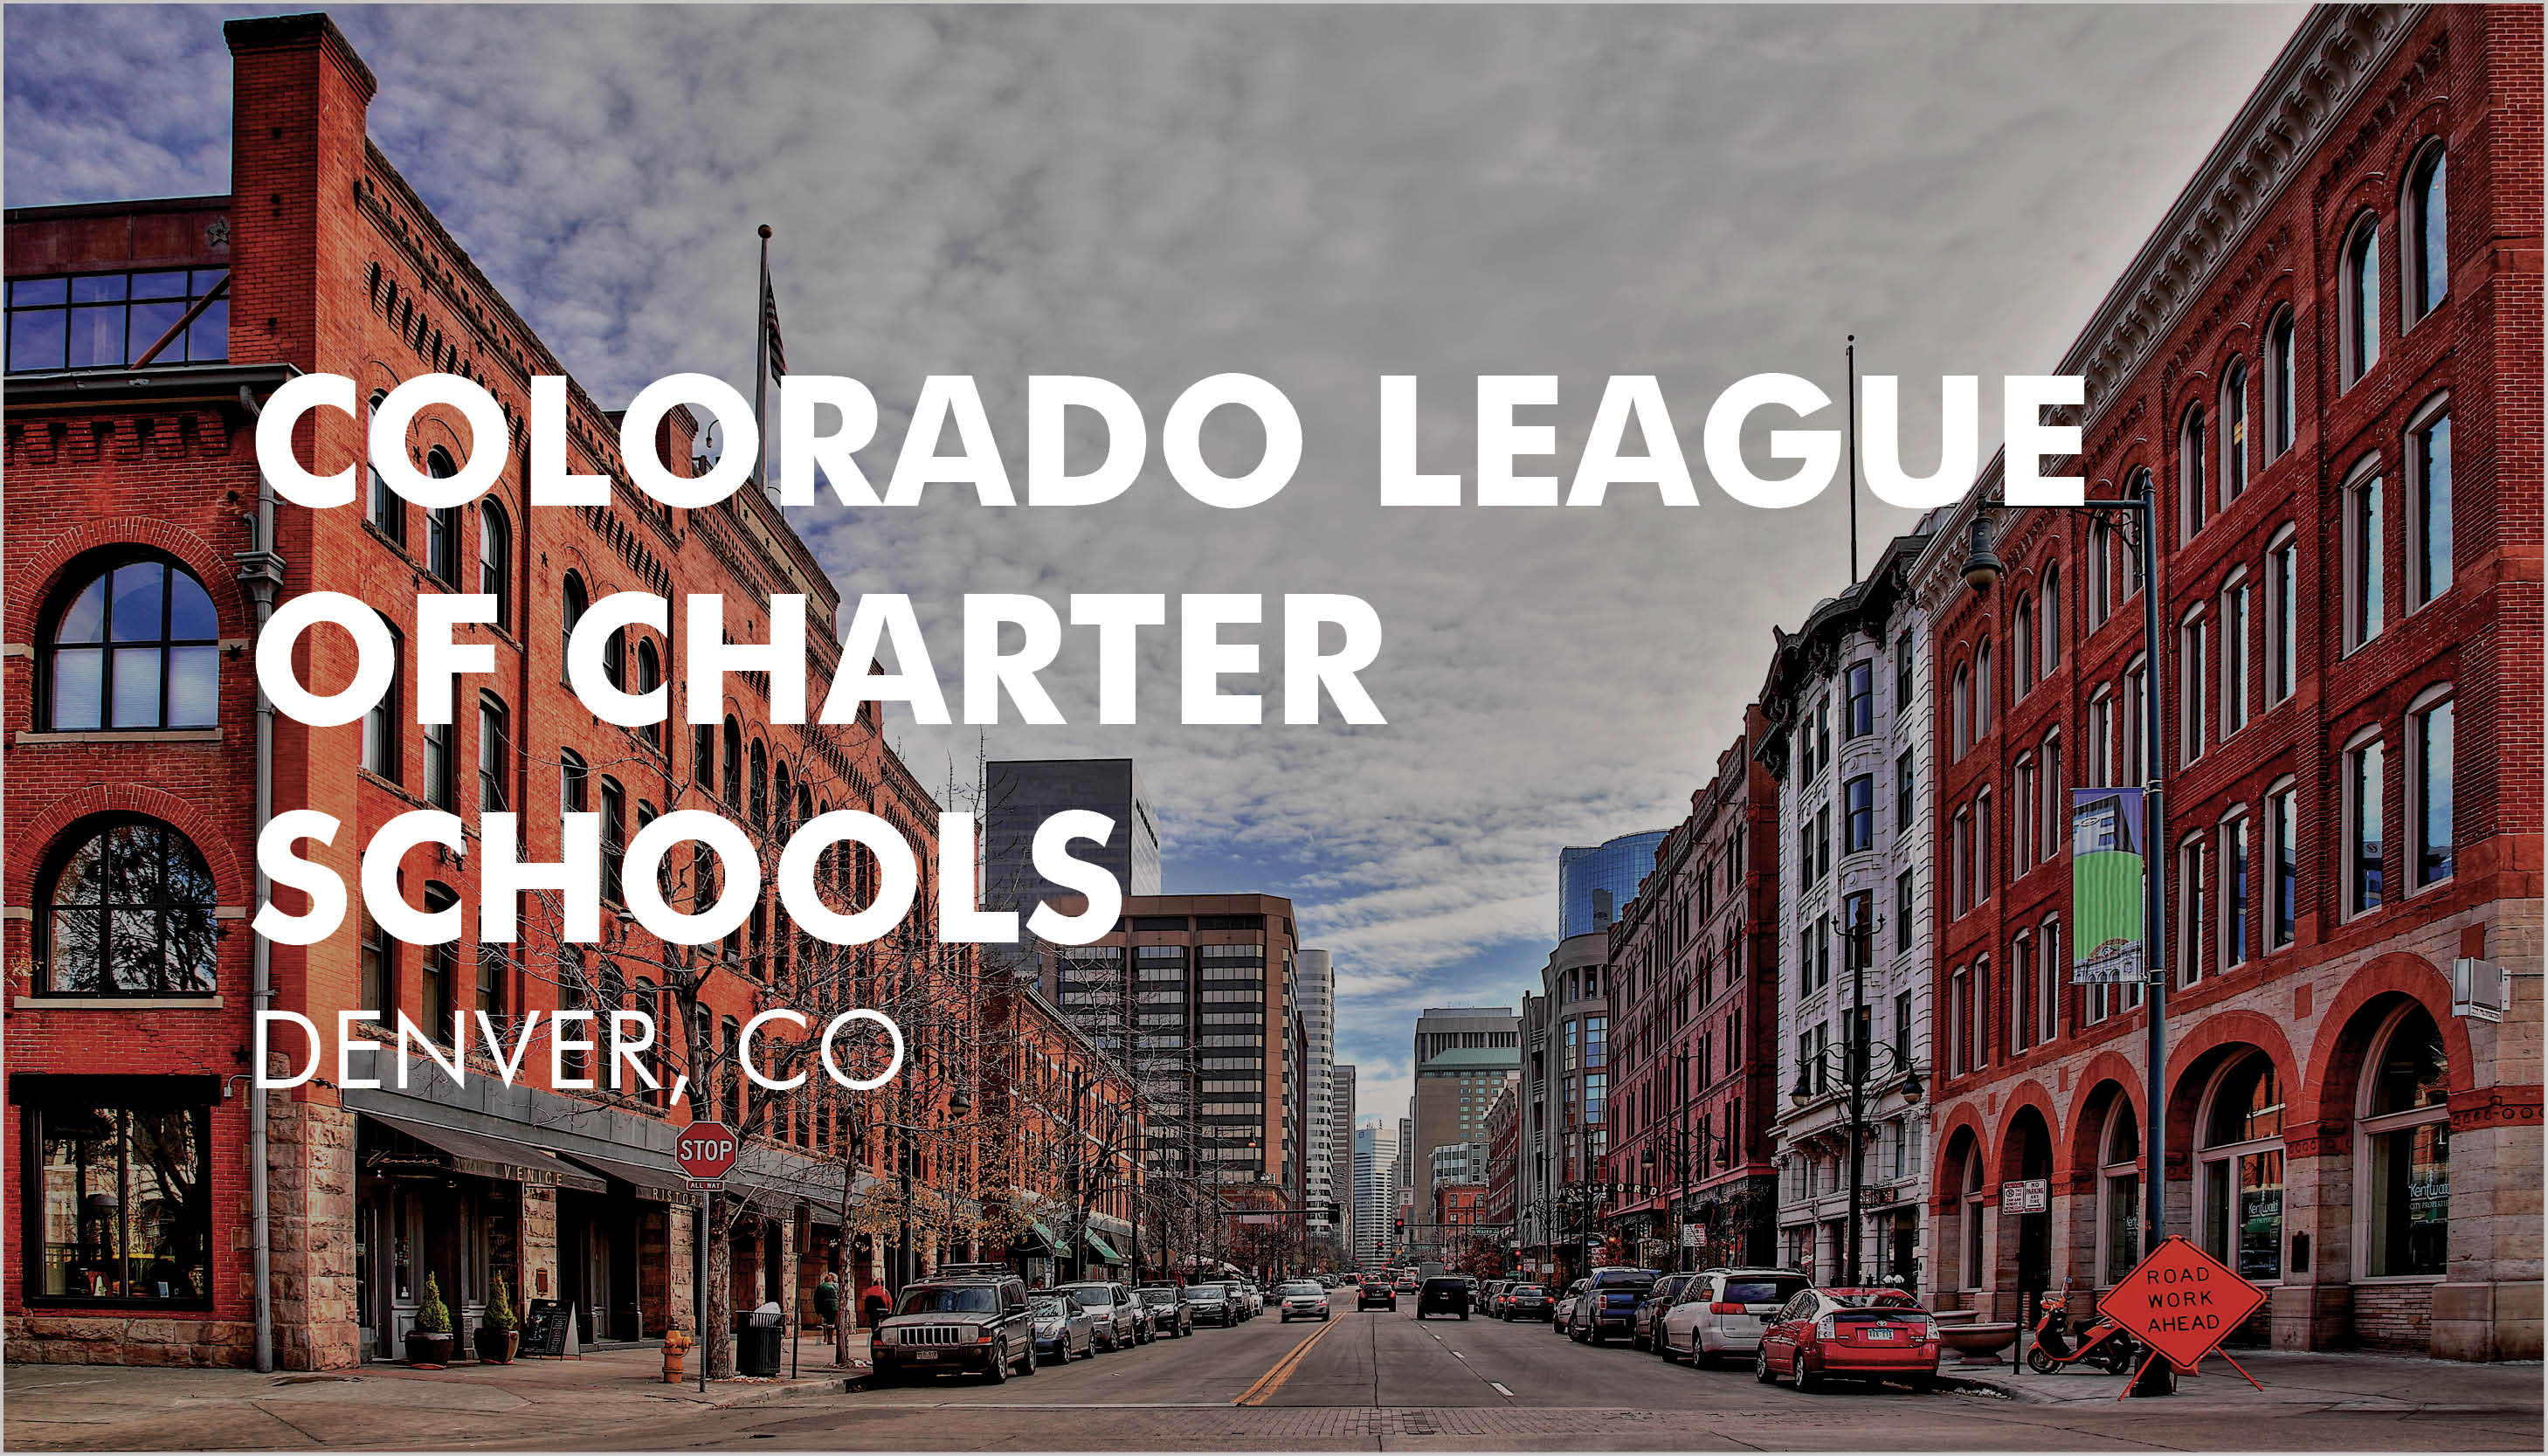 Colorado League of Charter Schools Conference 2019 Image